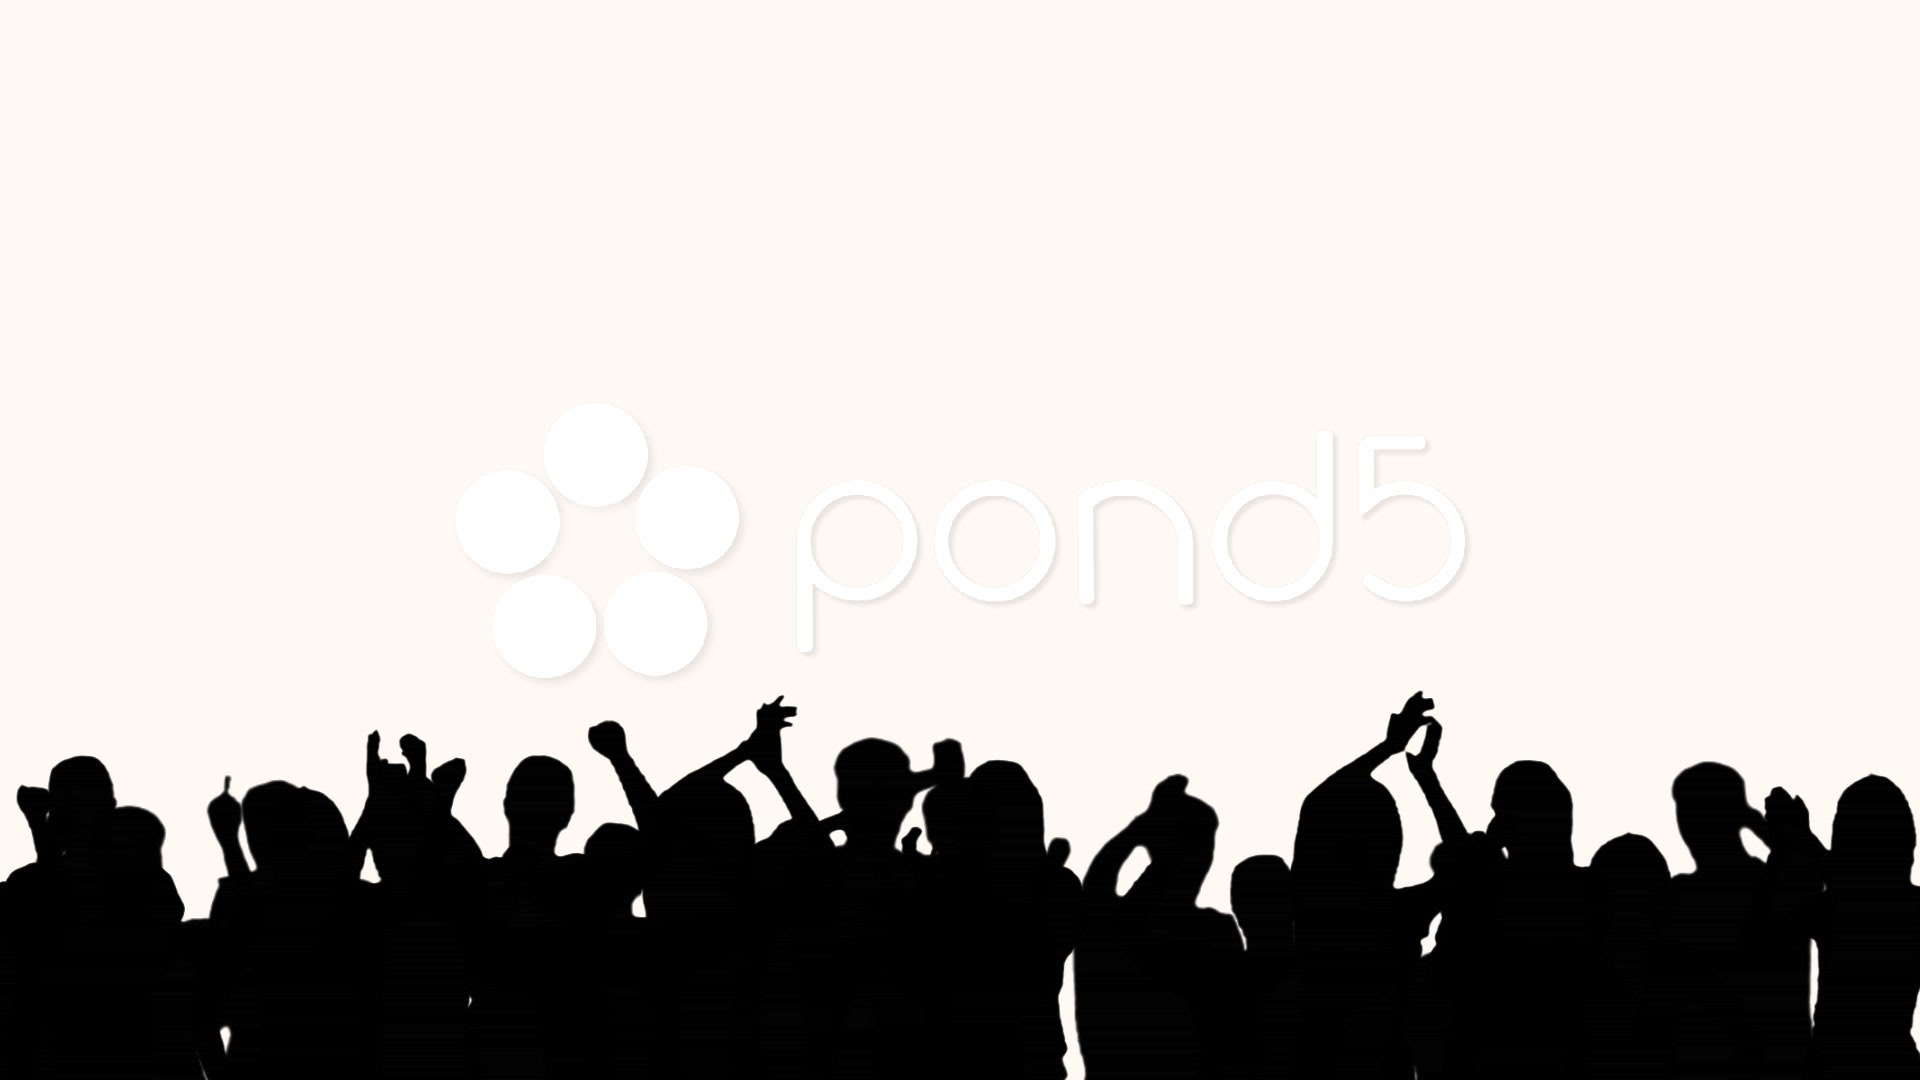 concert crowd silhouette at getdrawings com free for personal use rh getdrawings com crown vector file crown vector image